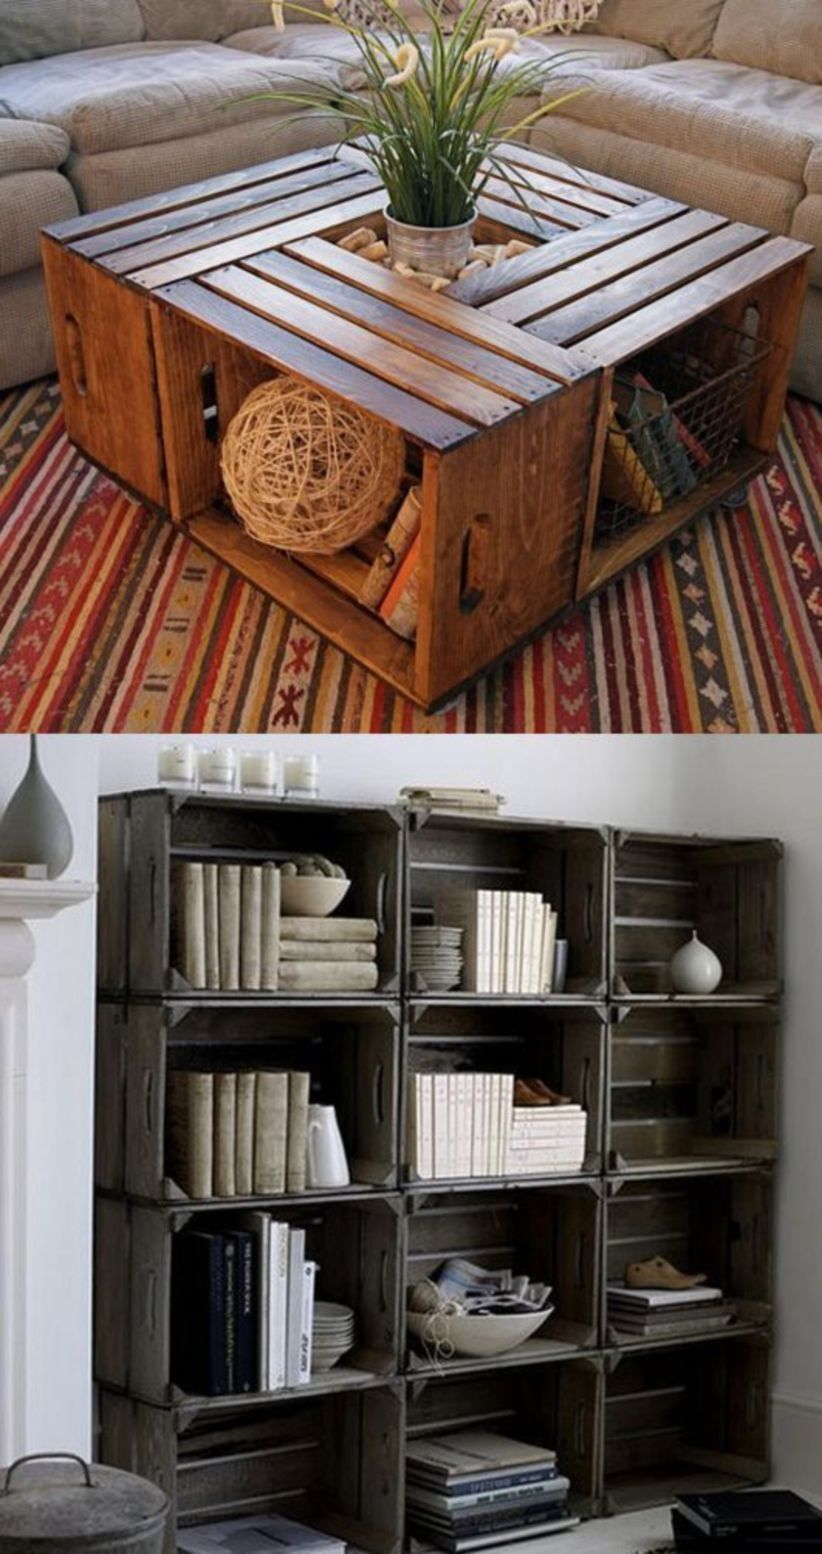 46 Diy Wooden Furniture Ideas That Inspire Diy Furniture Crate